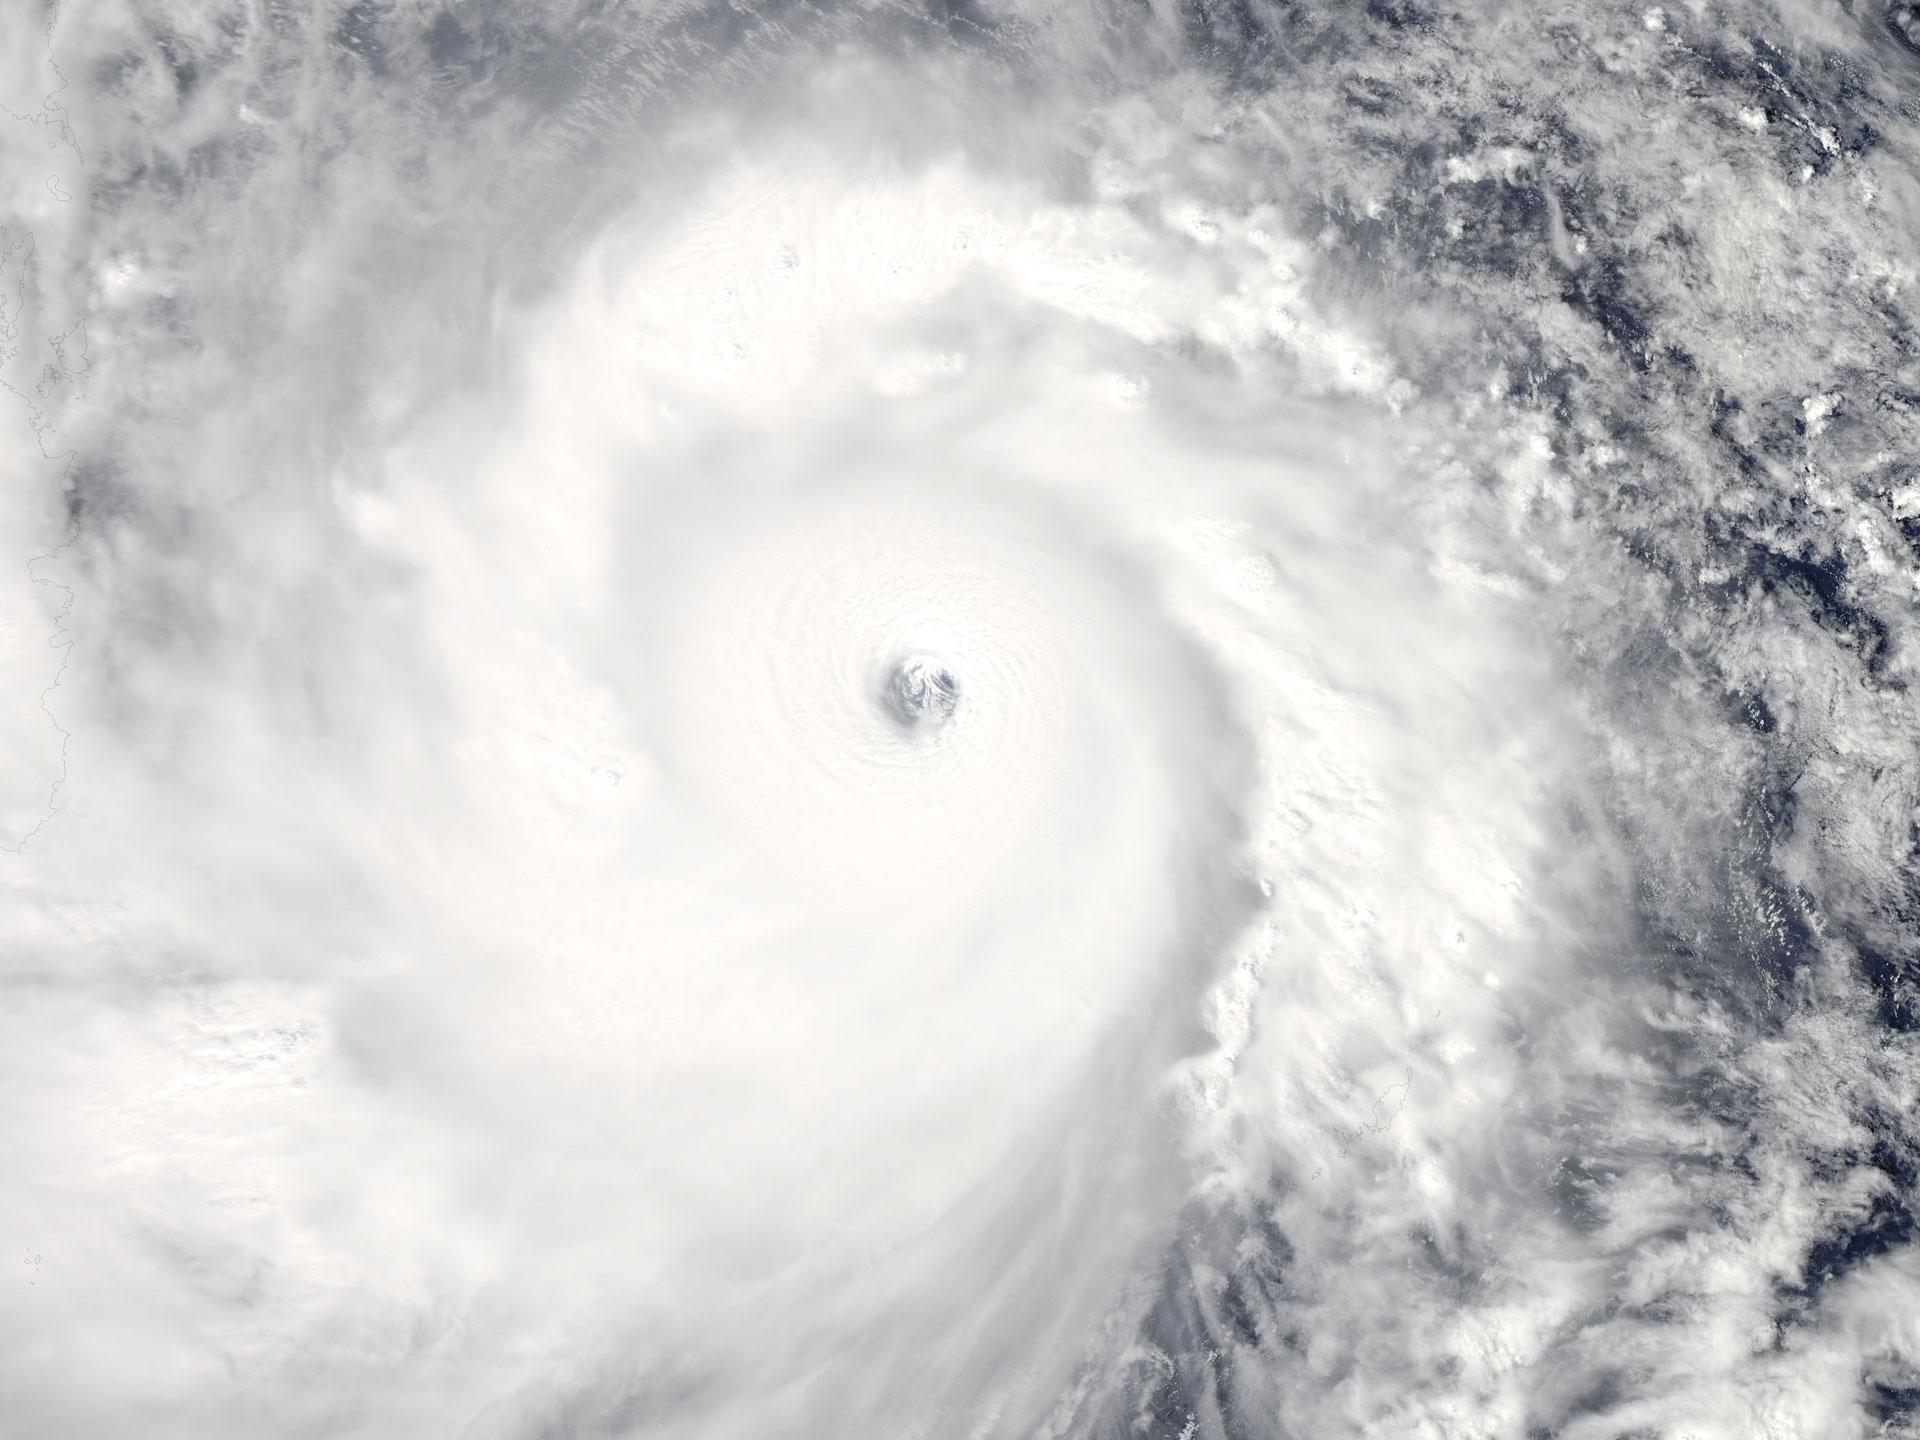 Super Typhoon Haiyan, one of the largest storms every recorded, made landfall in the Philippines on November 8th with record winds topping 200 miles an hour and a storm surge reaching 20ft, causing wide-spread damage and killing over 5,000 people.